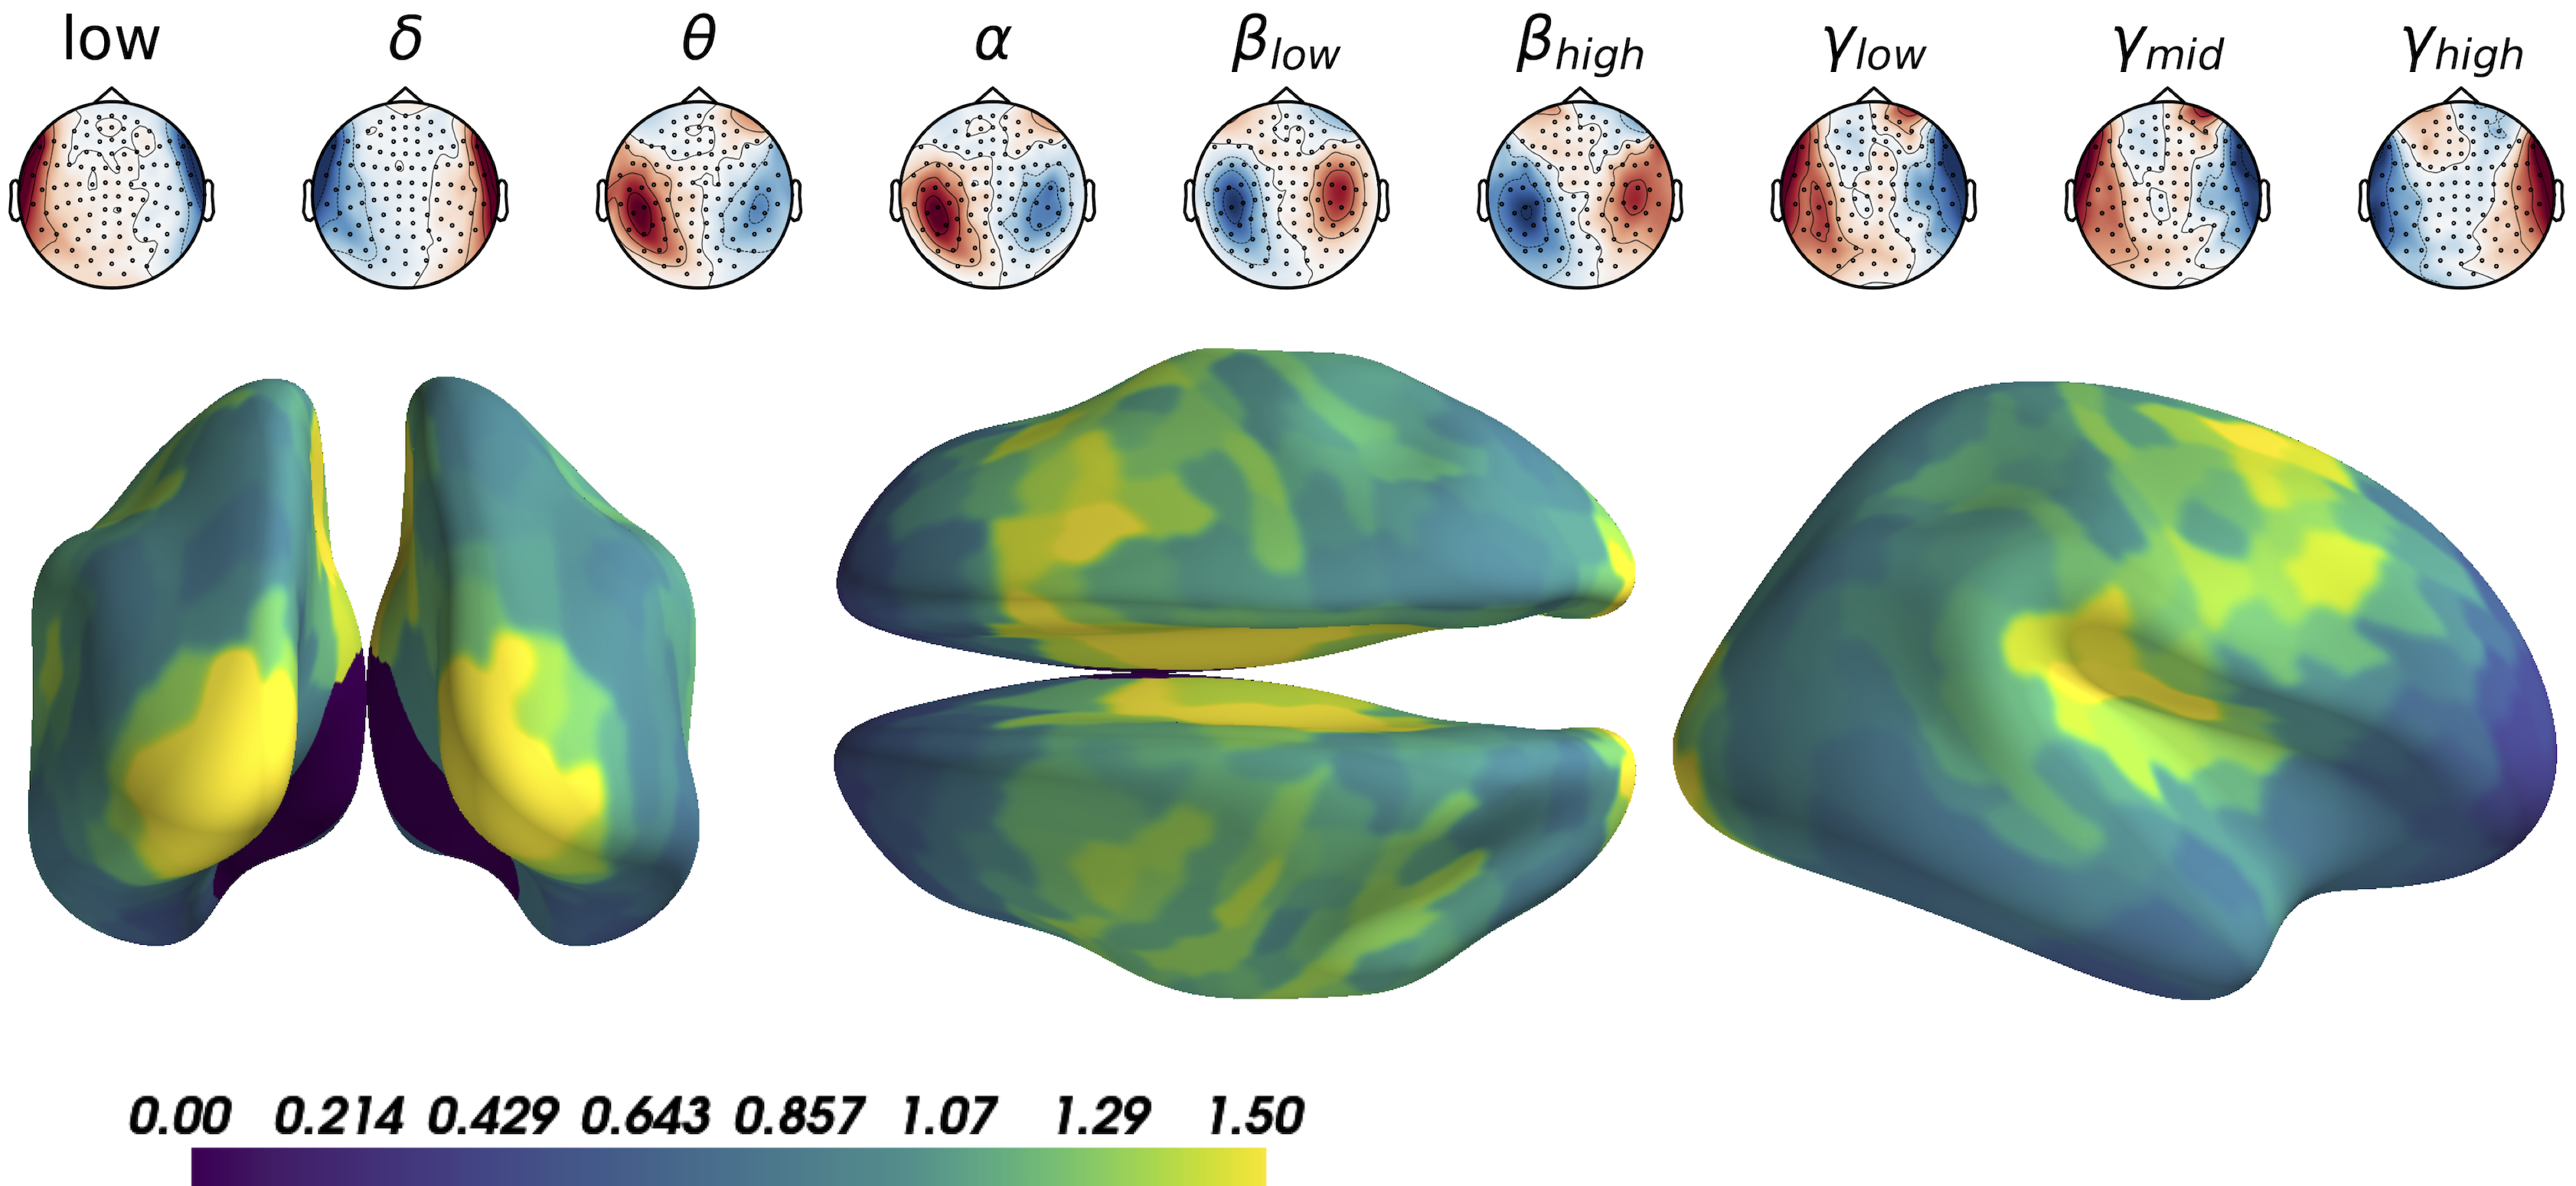 Model inspection. Upper panel: sensor-level patterns from supervised projection. One can notice dipolar configurations varying across frequencies. Lower panel: standard deviation of patterns over frequencies from MNE projection highlighting bilateral visual, auditory and premotor cortices.